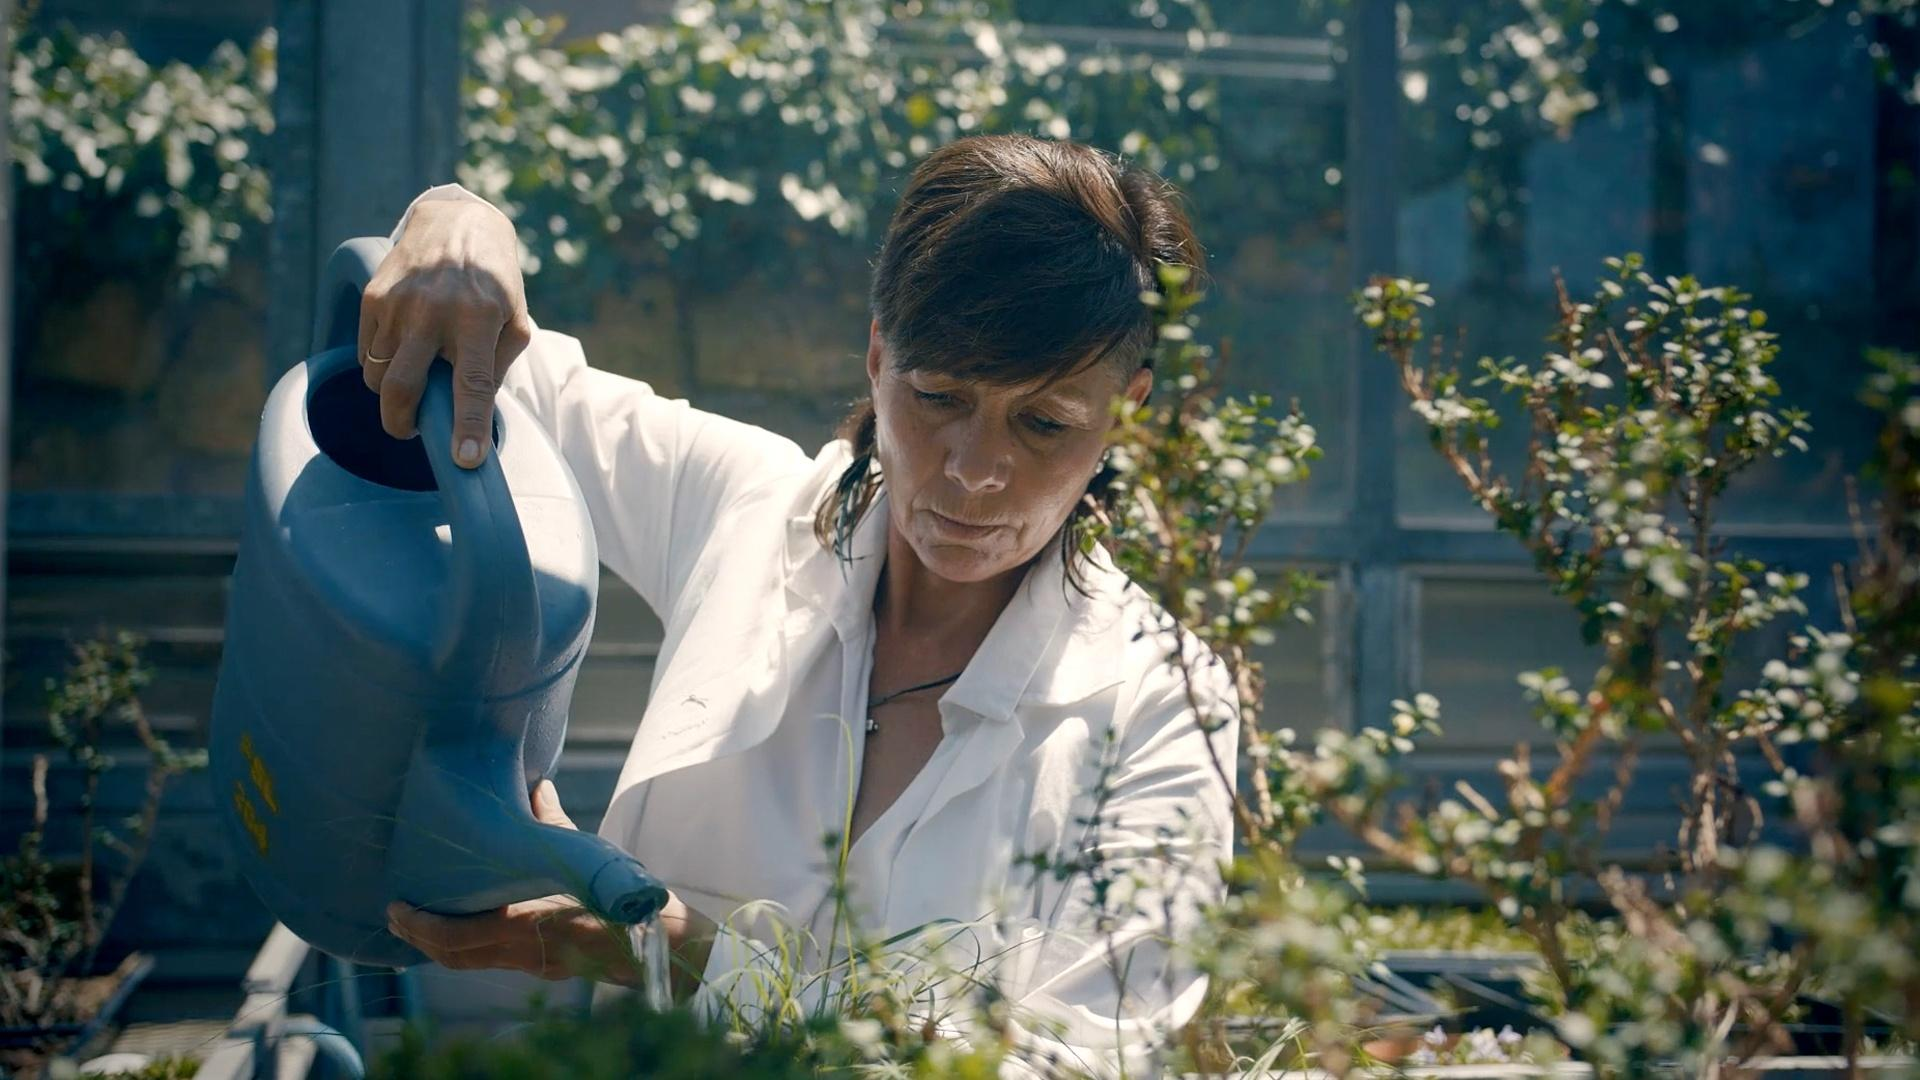 Plant Scientist Jill Farrant tending to the plants in her greenhouse in South Africa.